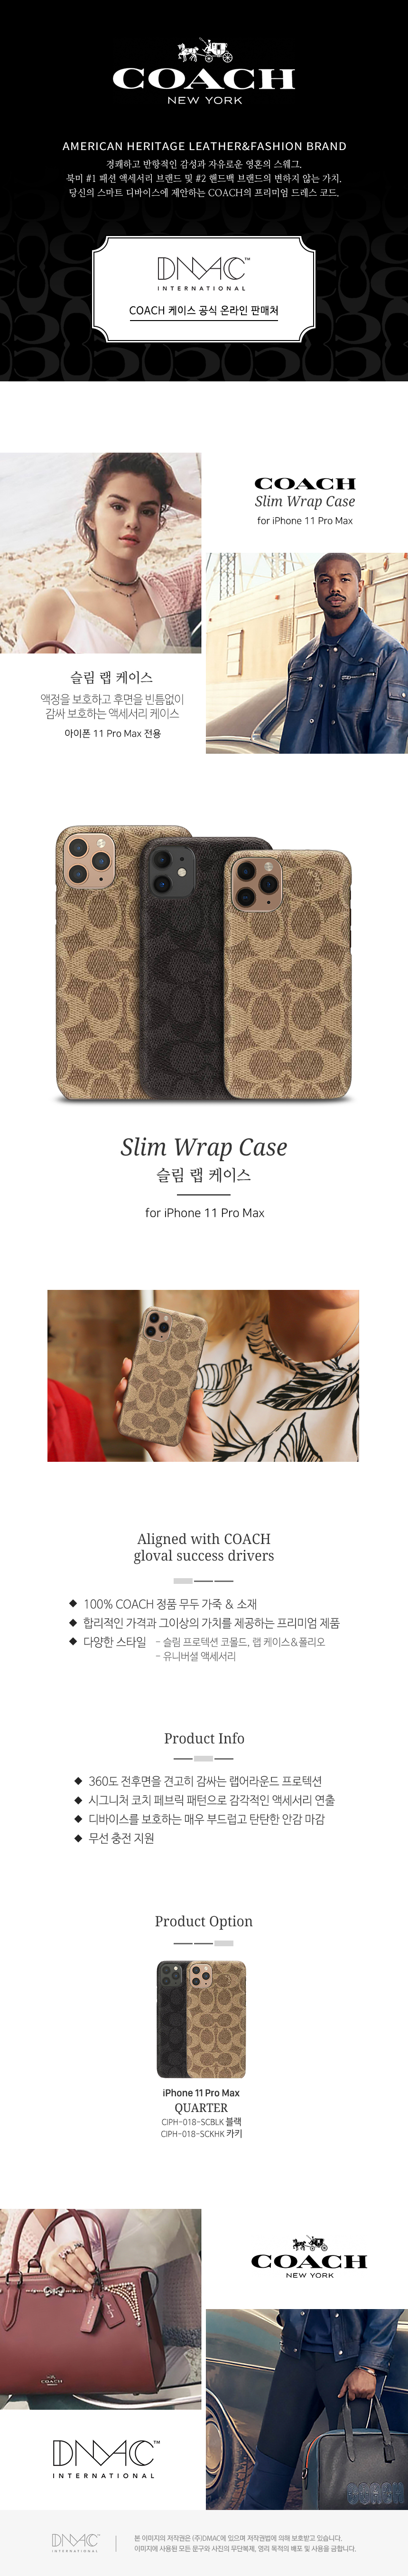 Slim-Wrap-Case_iPhone11promax